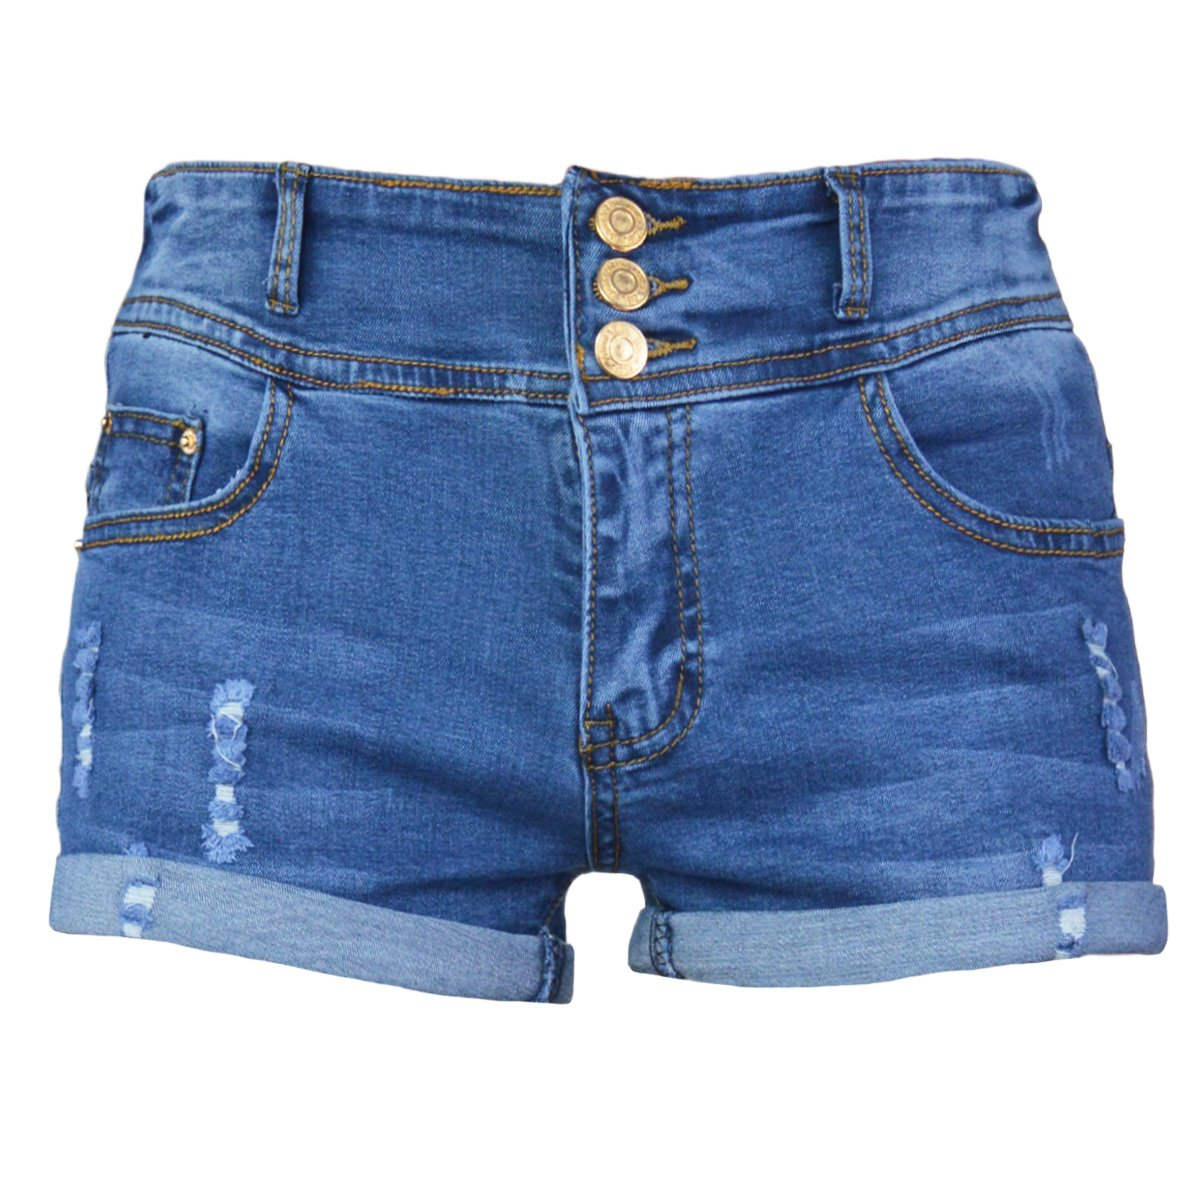 PHOENISING Women's Comfy Denim Pants Stretchy Ripped Hole Short Shorts, Size 6-20